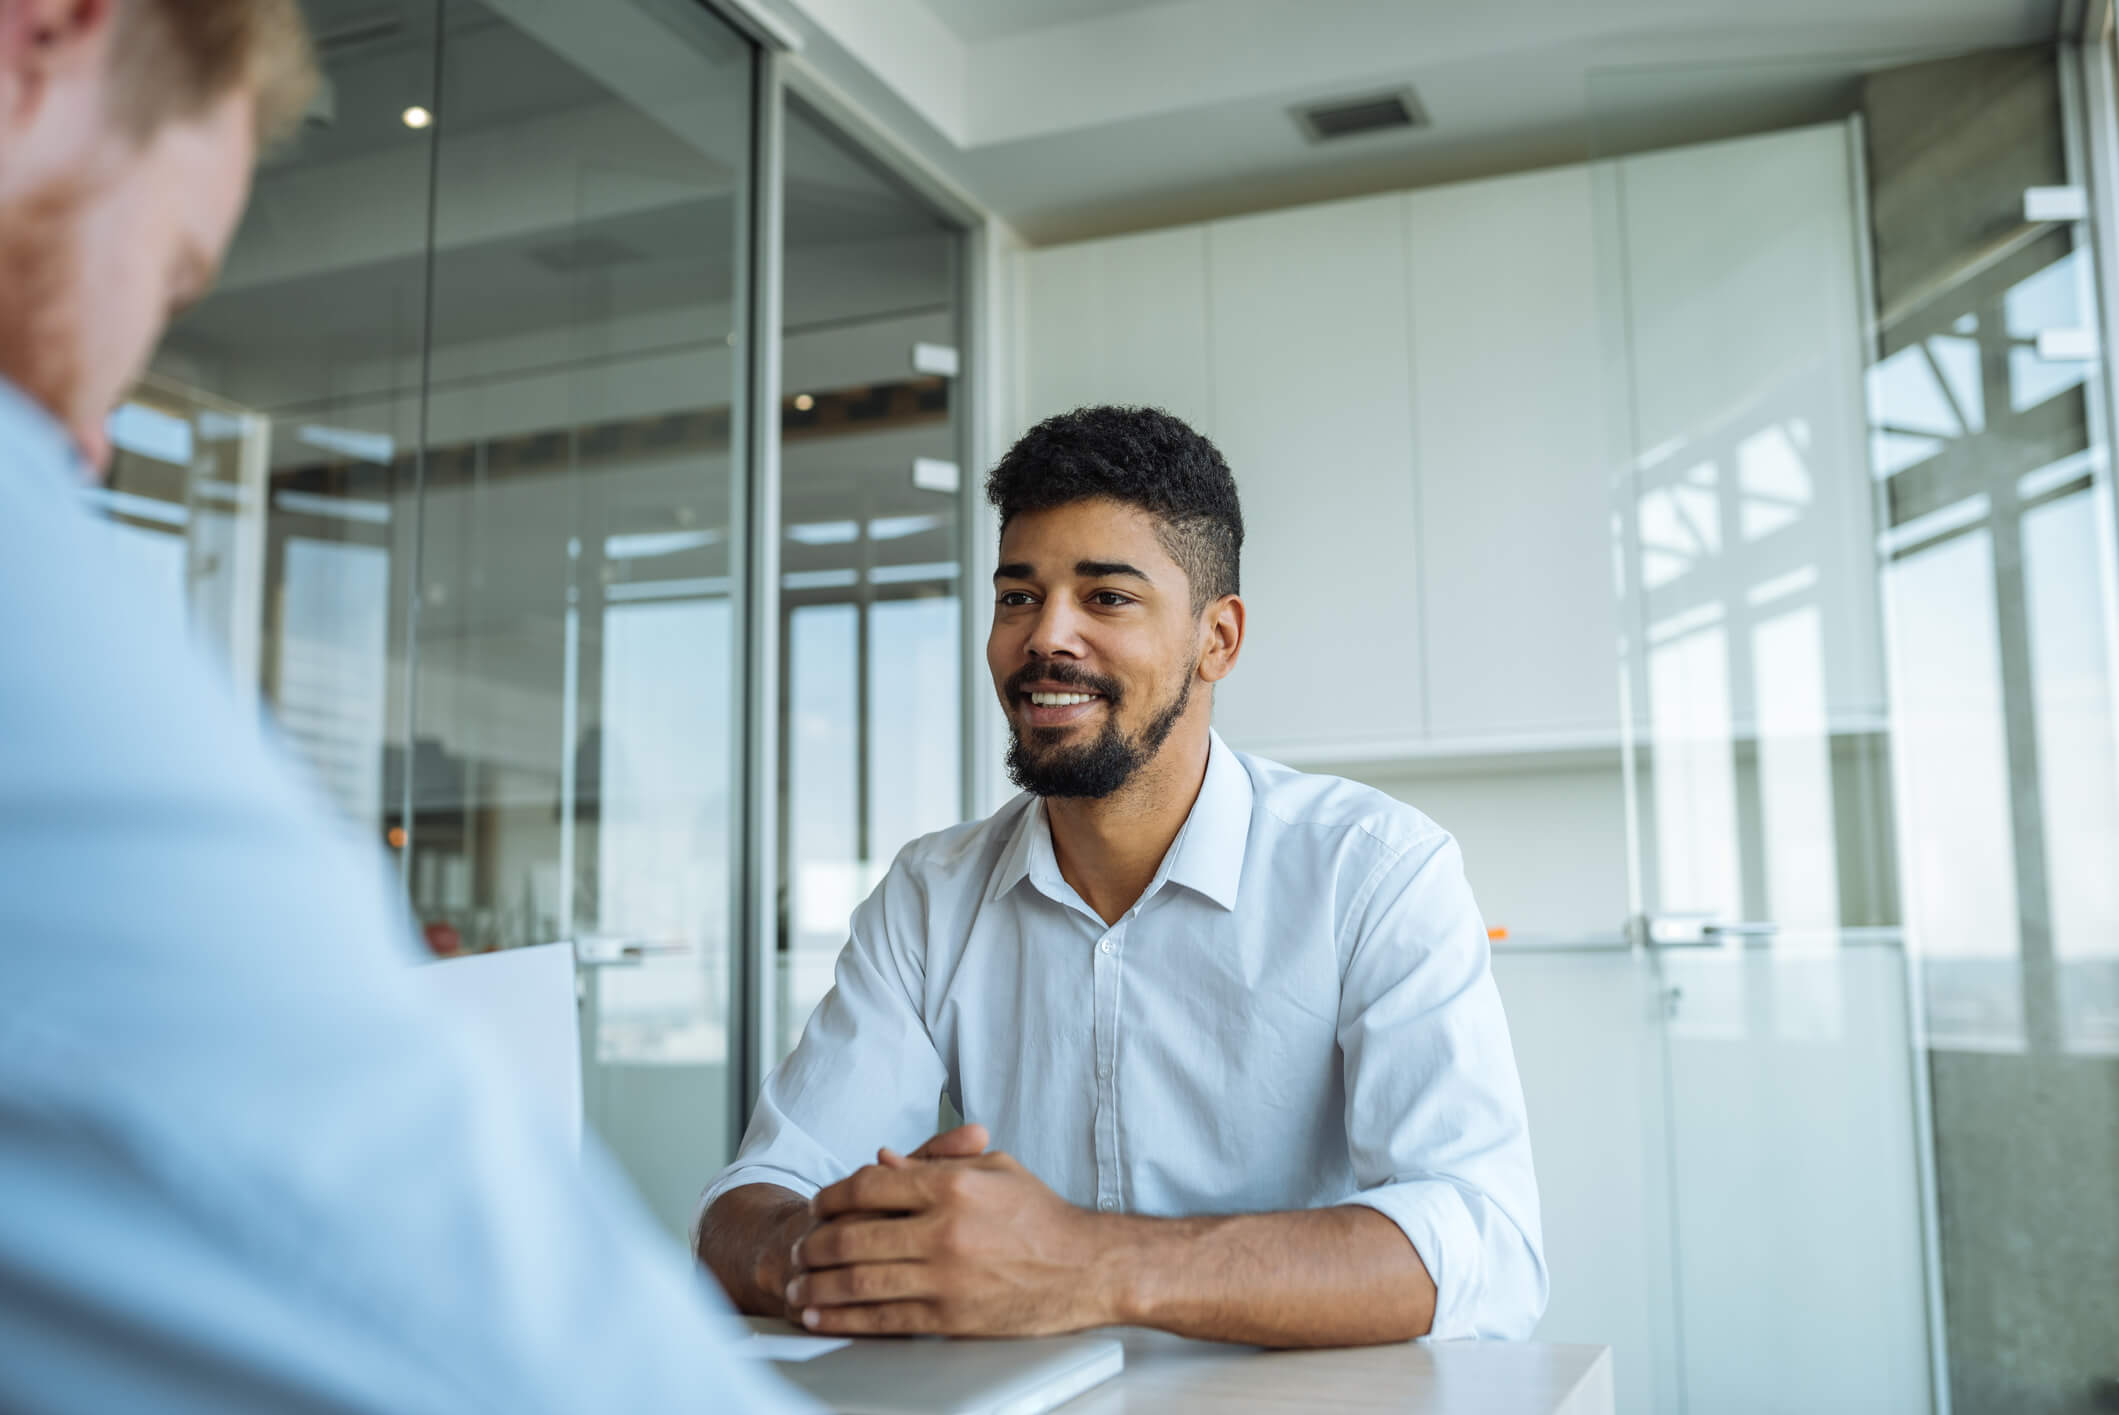 how to ask about second interview